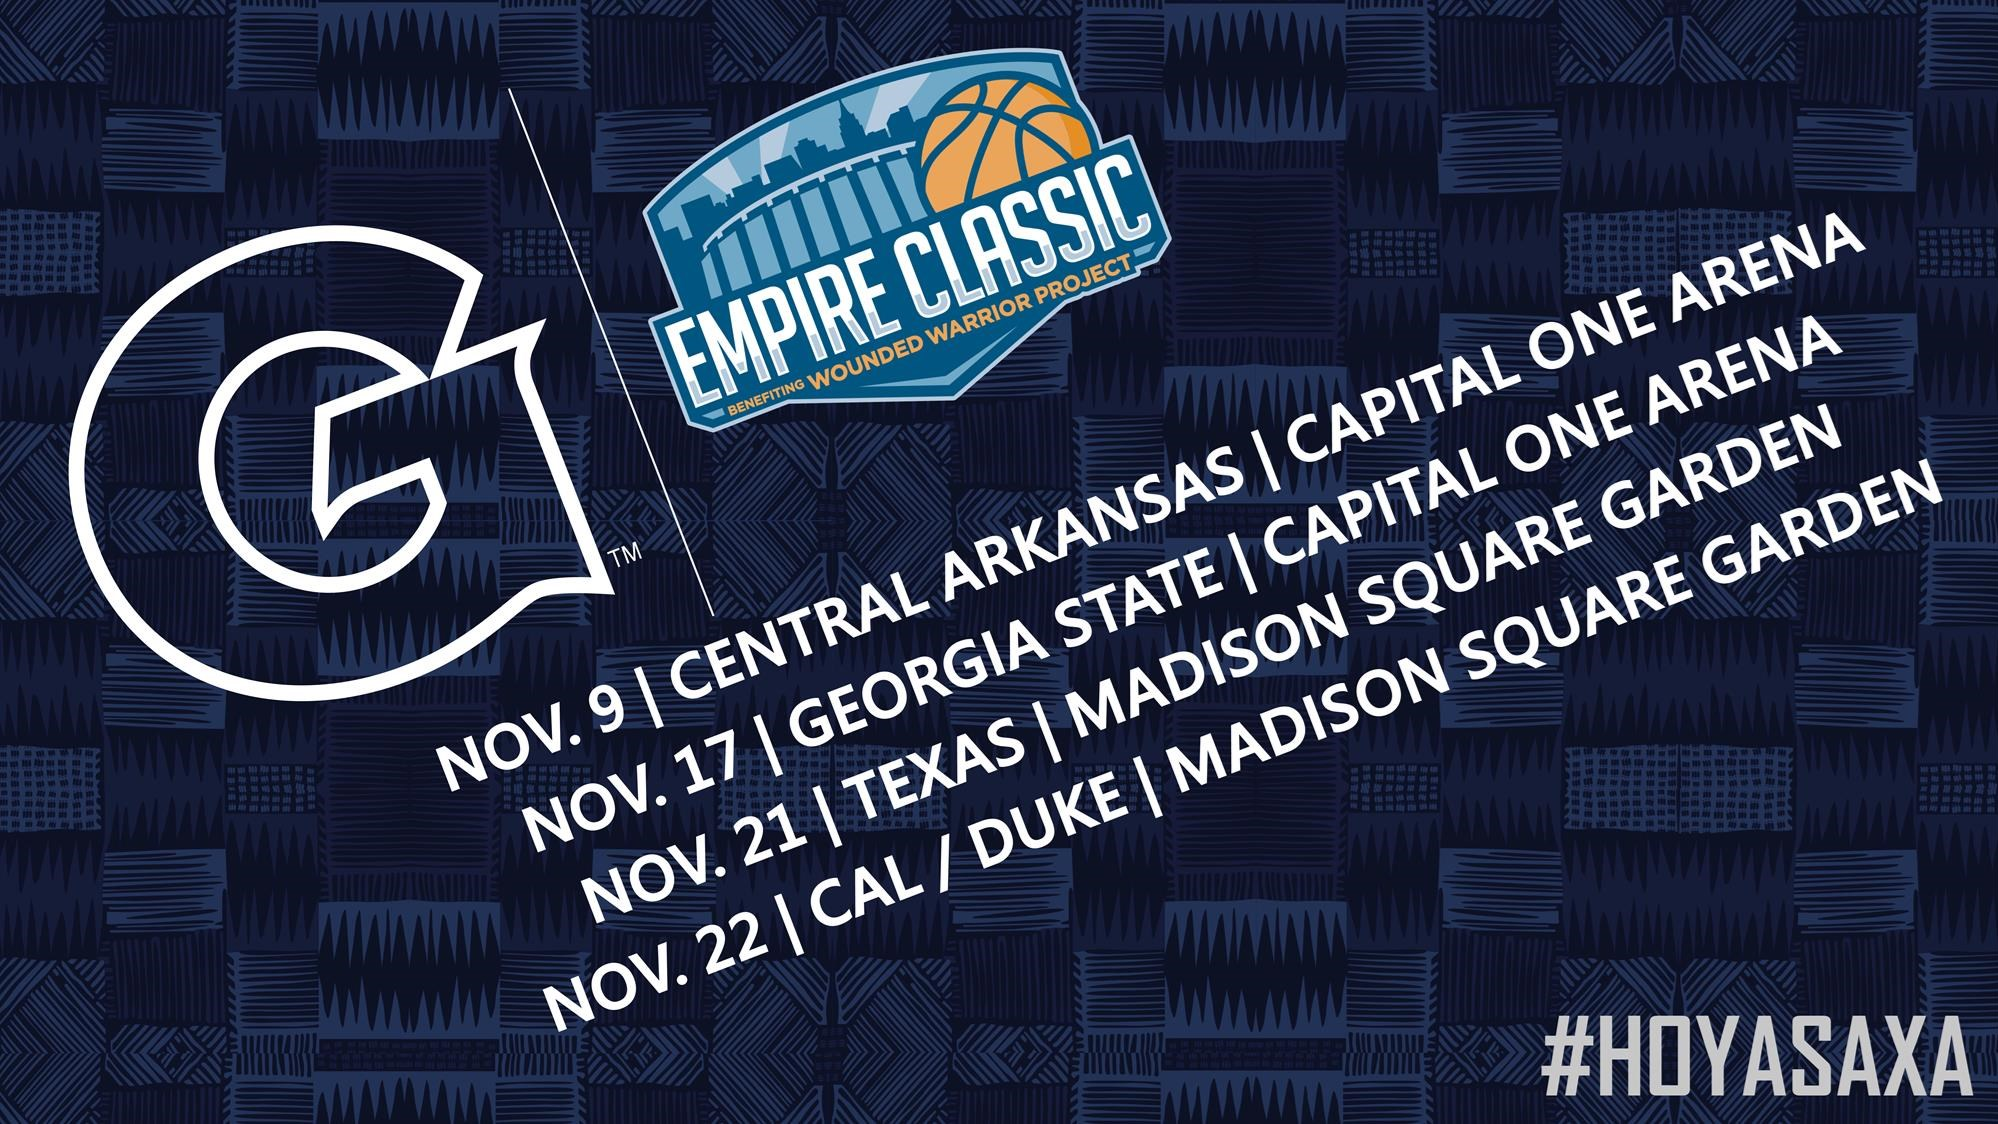 Schedule for Empire Classic Announced